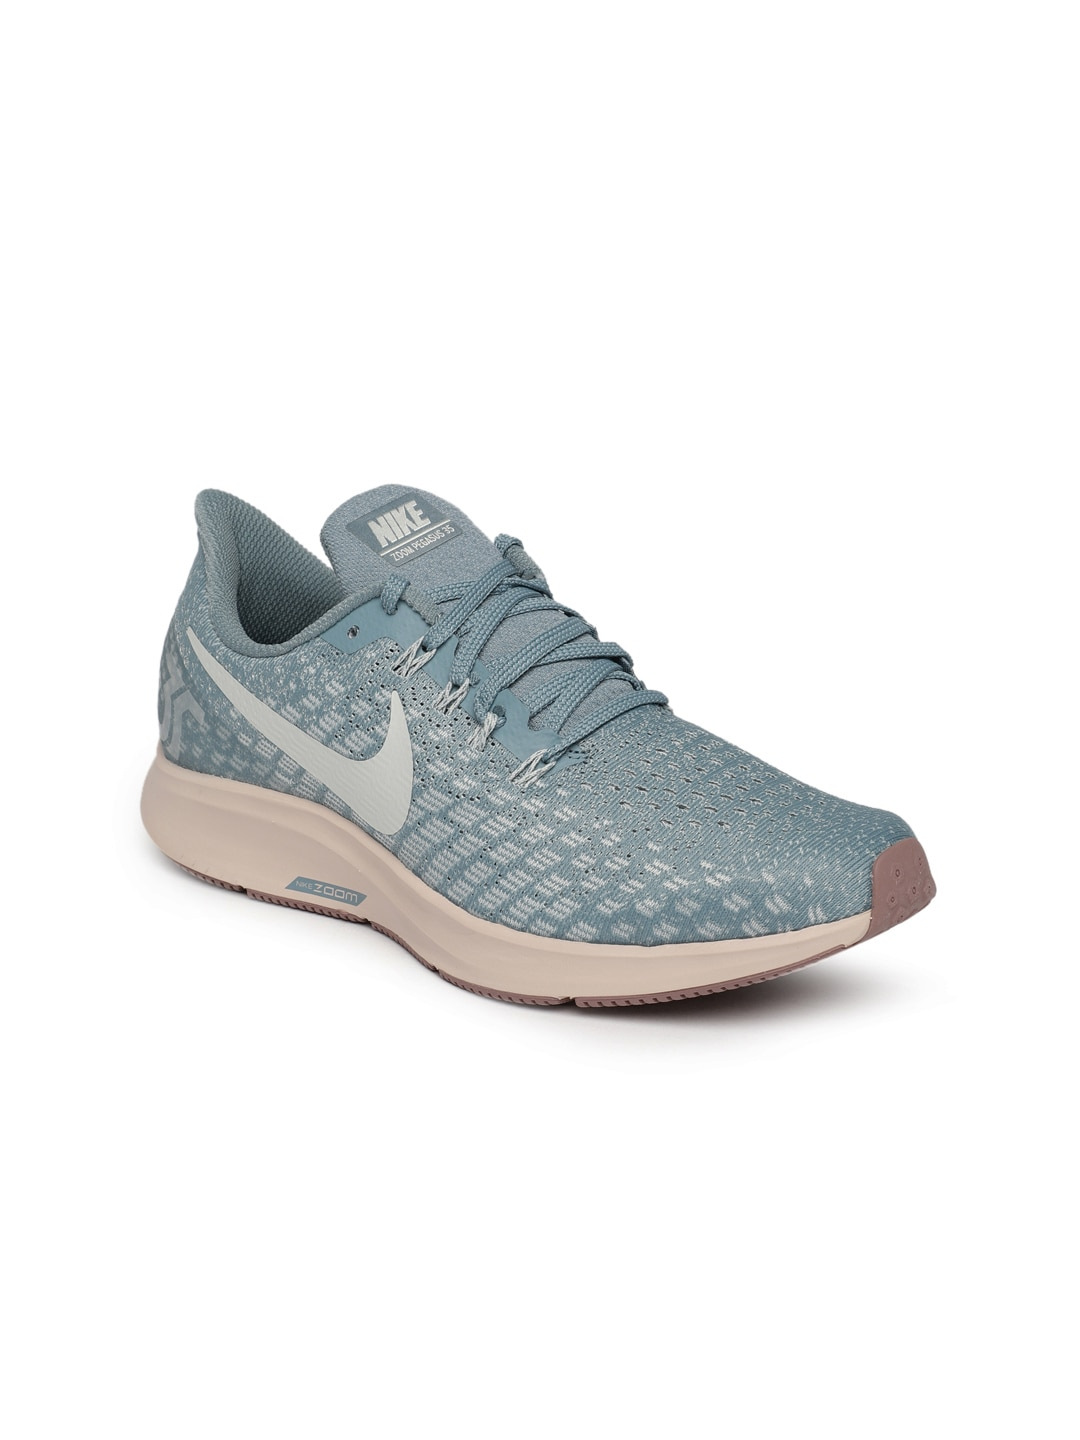 0555611ffdd Buy Nike Women Teal AIR ZOOM VOMERO 13 Running Shoes - Sports Shoes ...